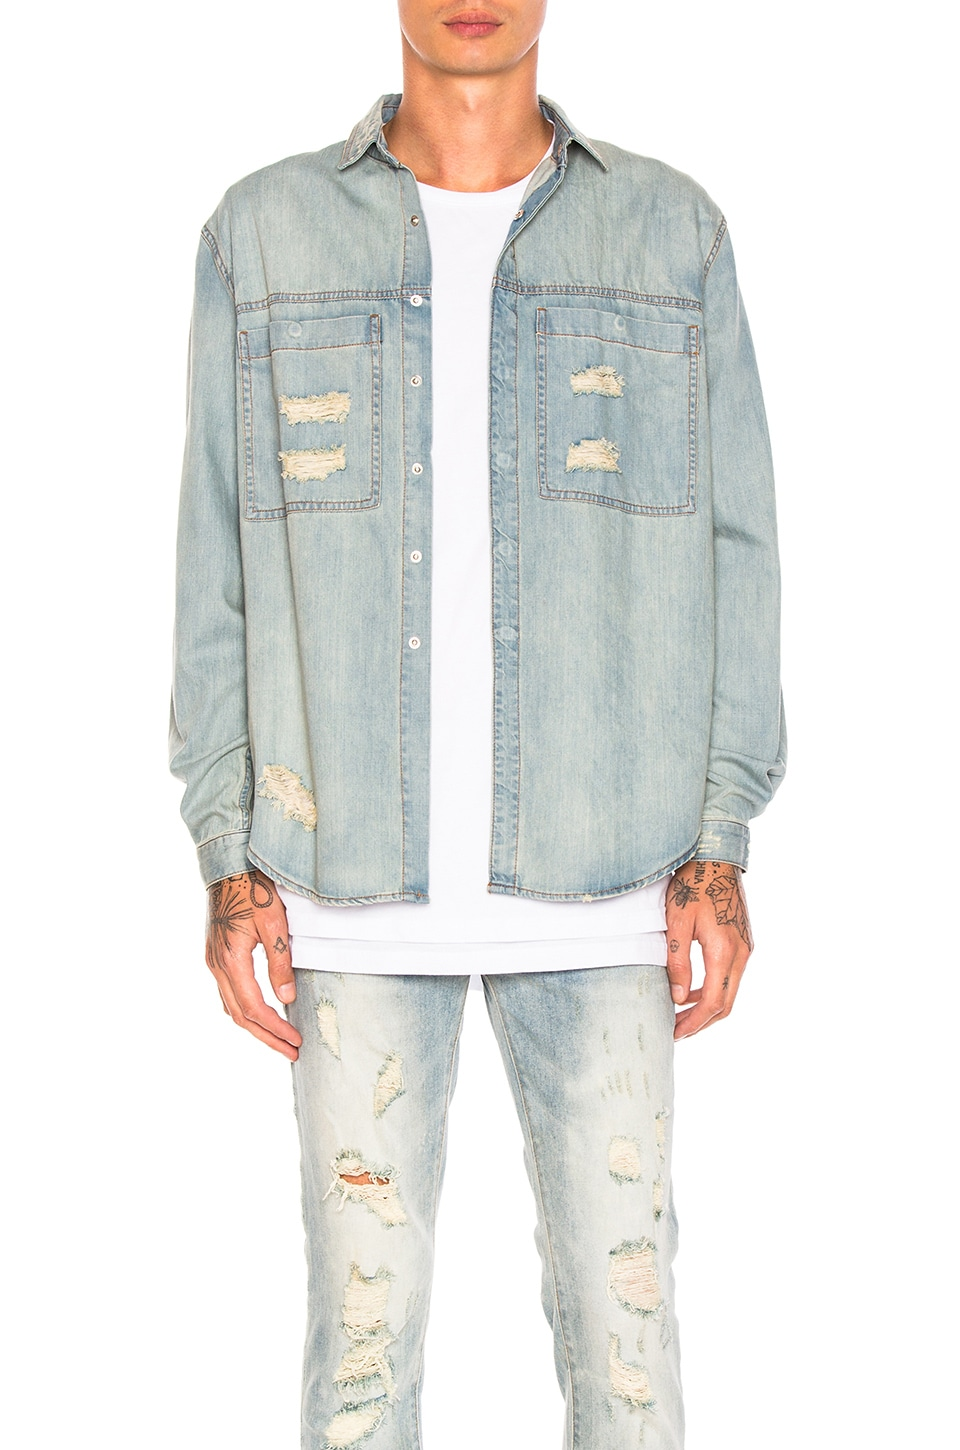 Distressed Against Denim Shirt by Stampd